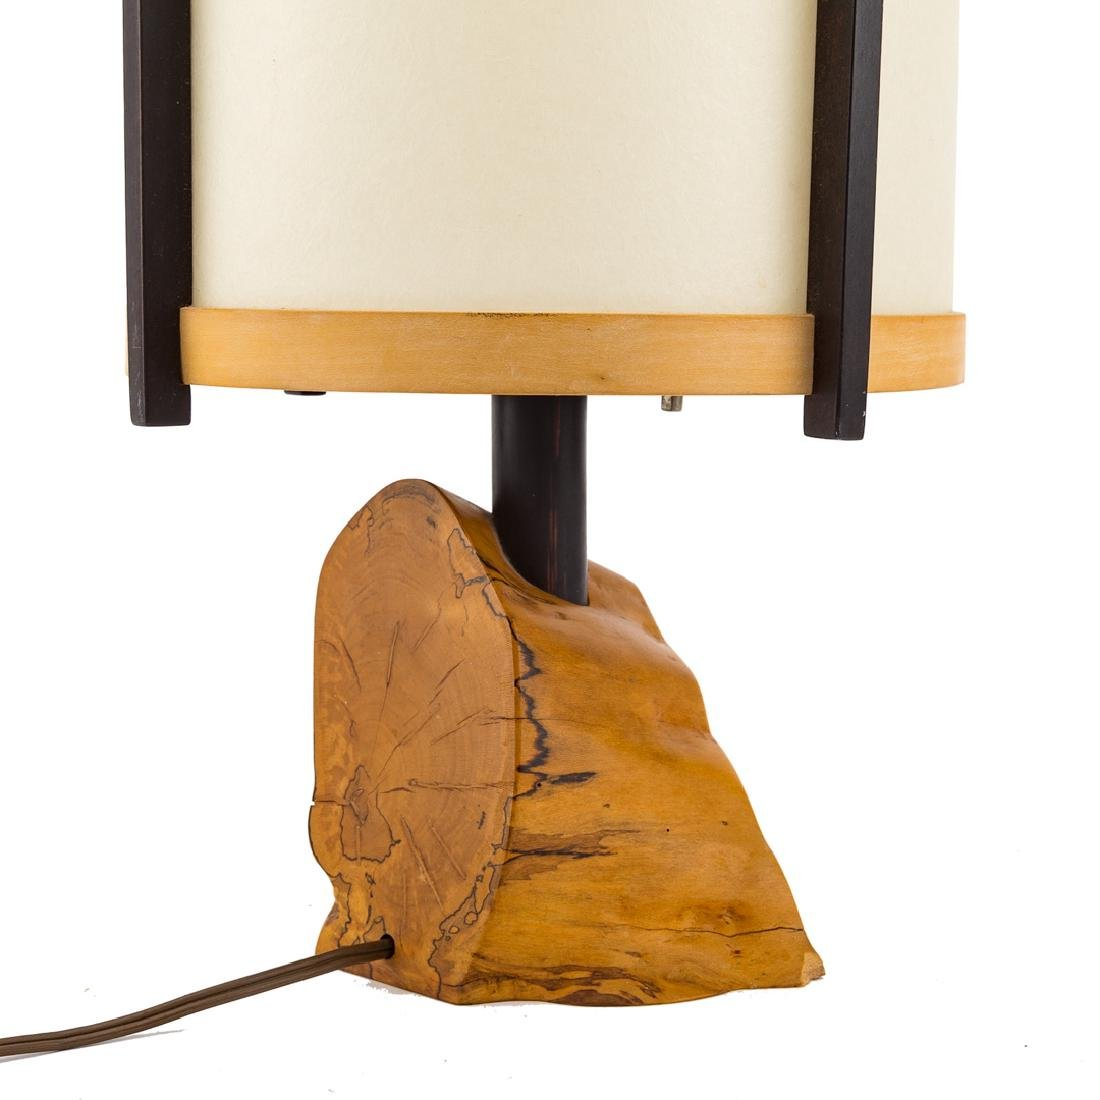 George Nakashima Desk Lamp - 4